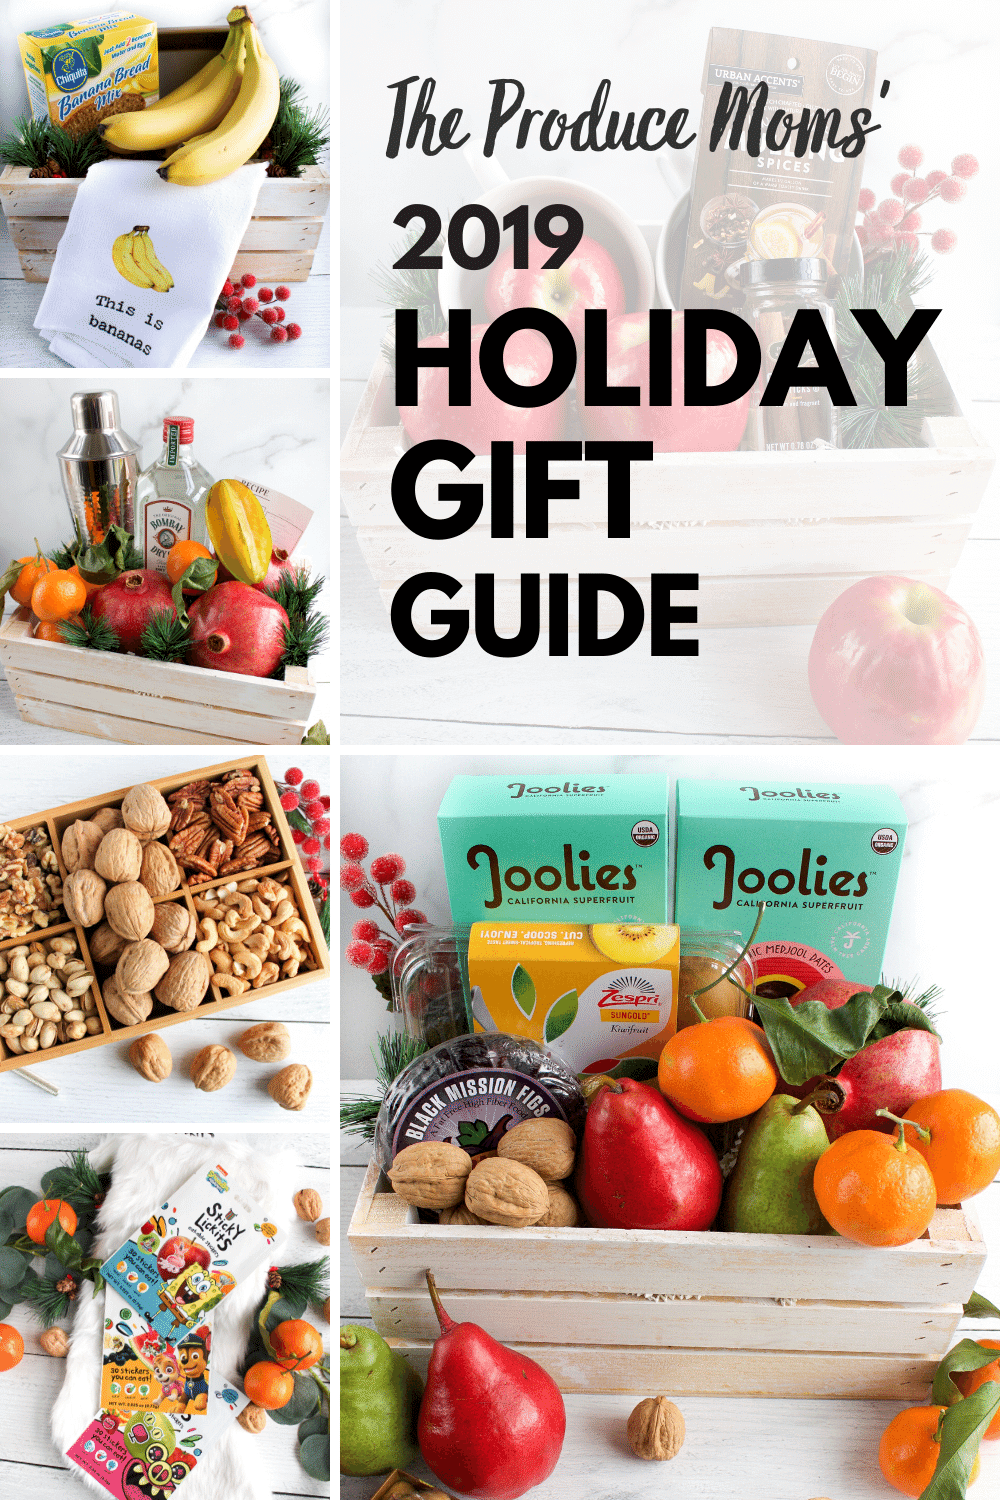 The Produce Moms' 2019 Holiday Gift Guide - Homemade Gift Baskets, Stocking Stuffers, and More